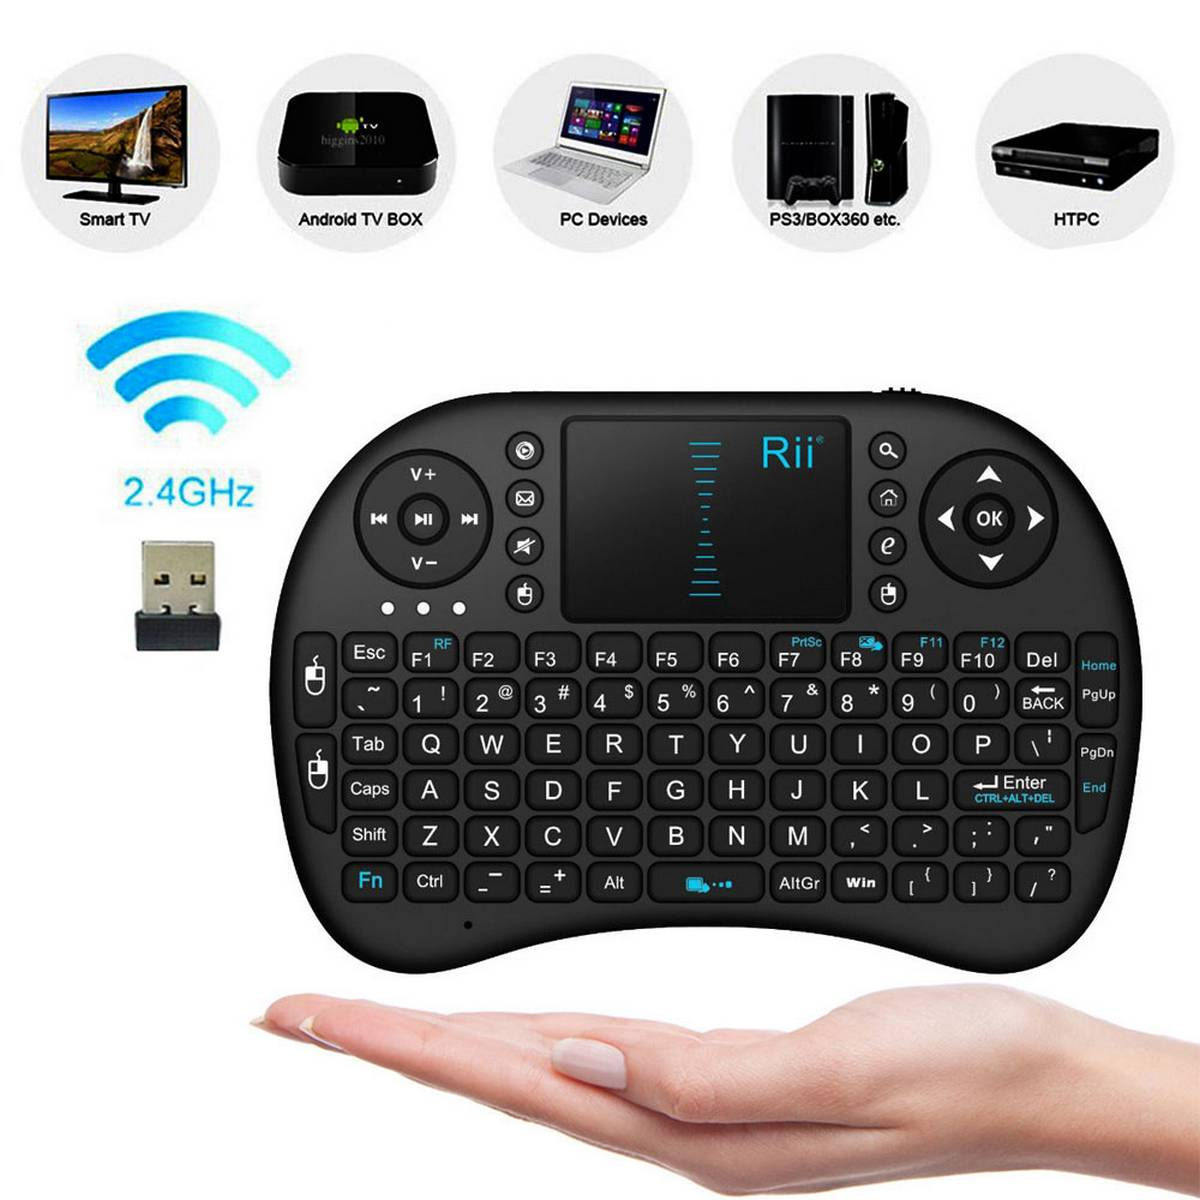 Mini Wireless Keyboard With Touchpad Mouse Rf500 - Black